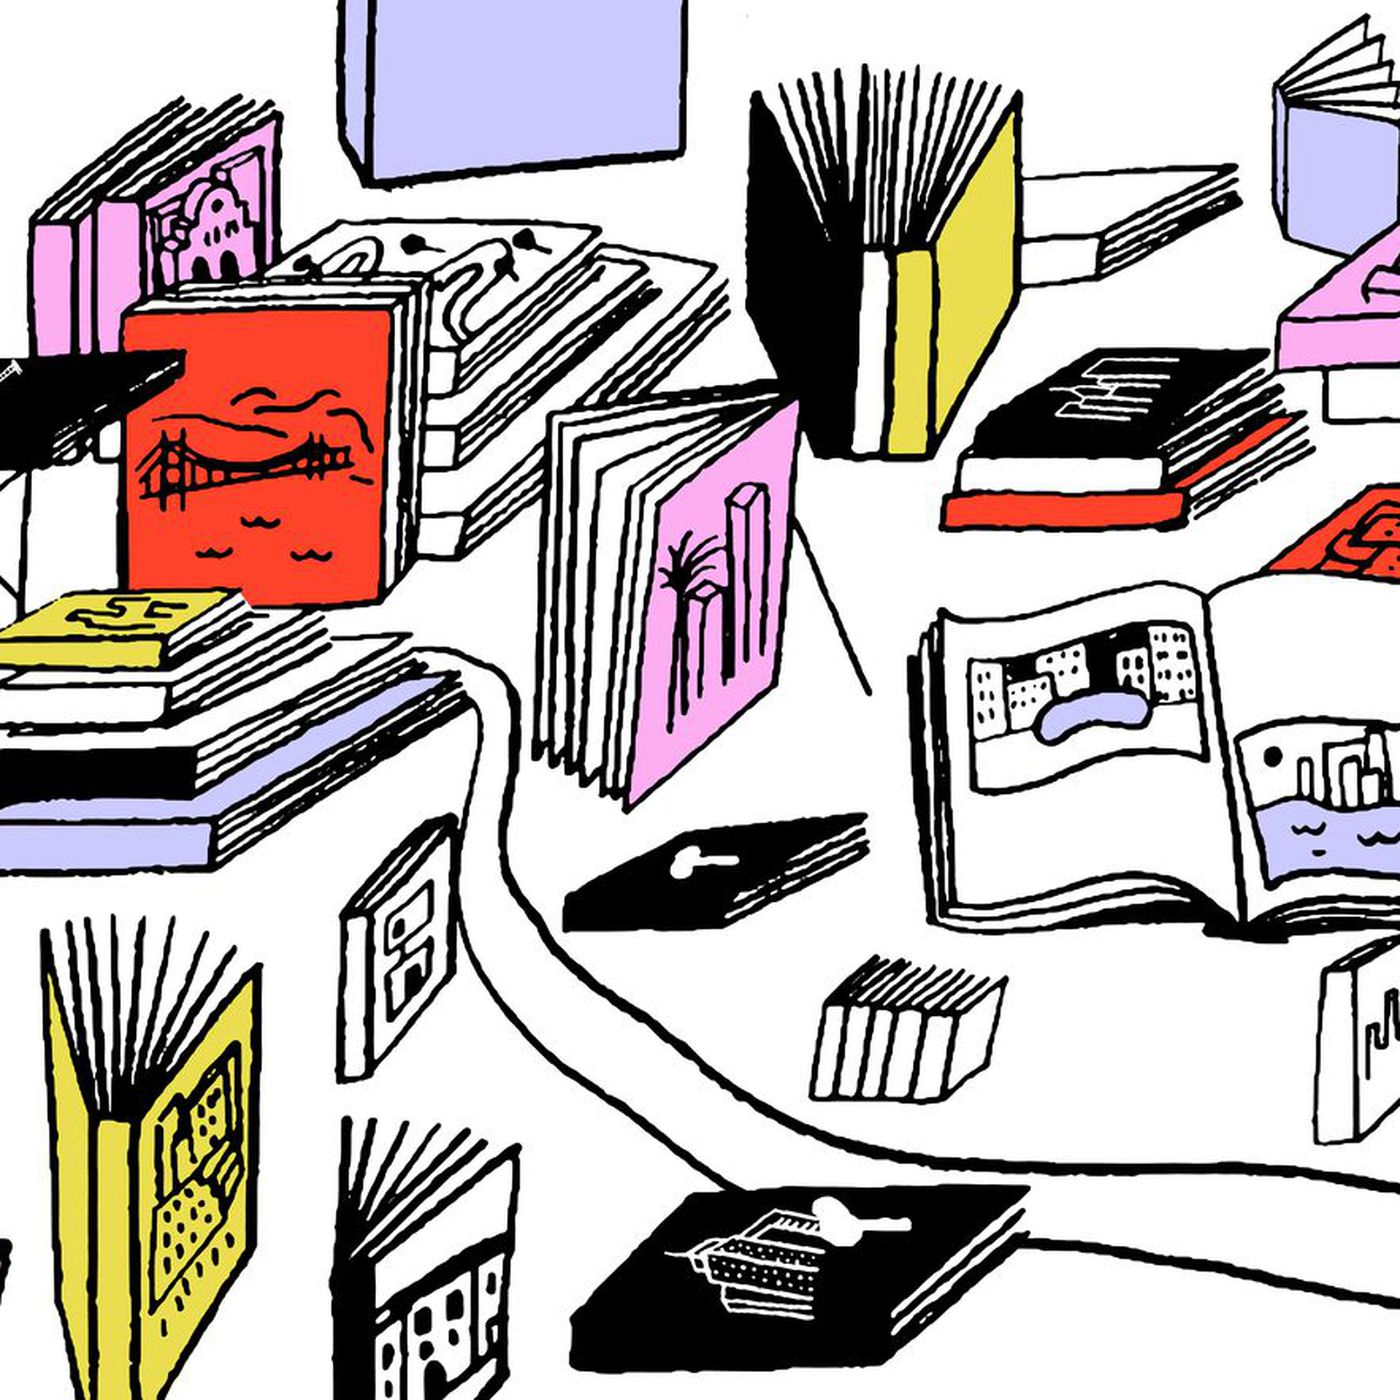 101 books about cities - Curbed